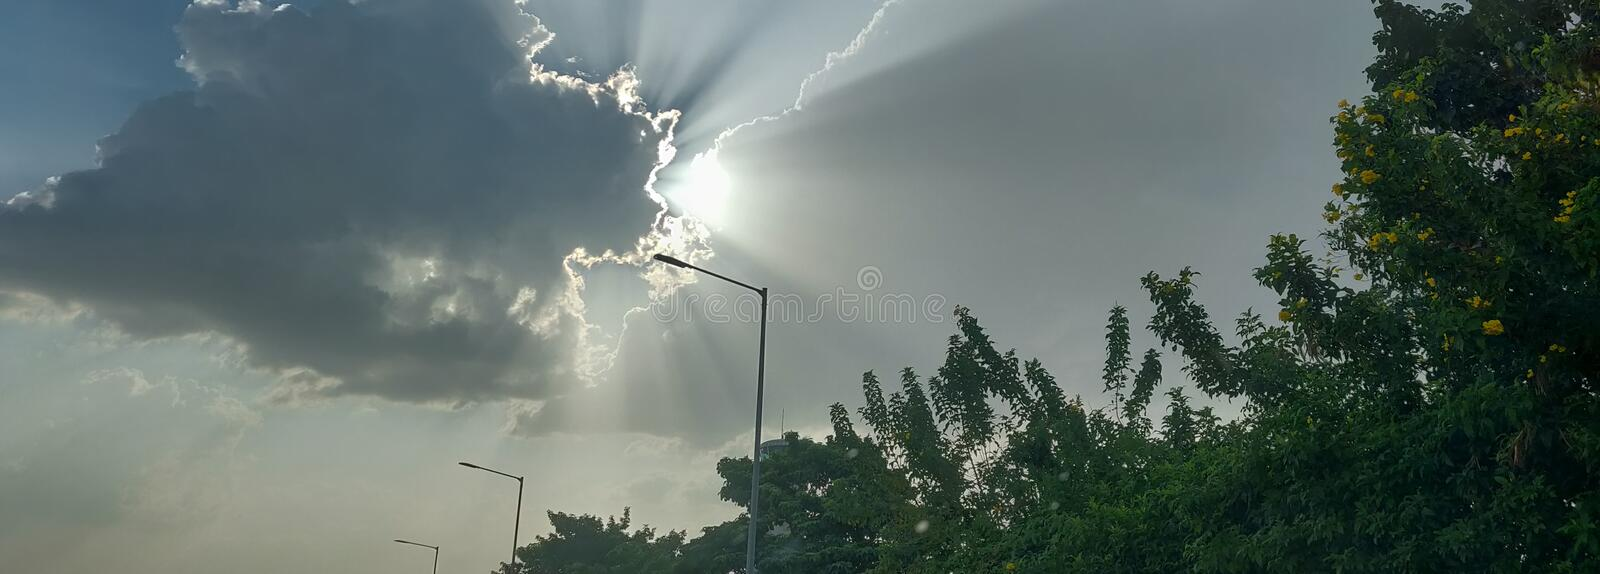 Skyscape: late afternoon view of sun rays filter through dark clouds royalty free stock photos